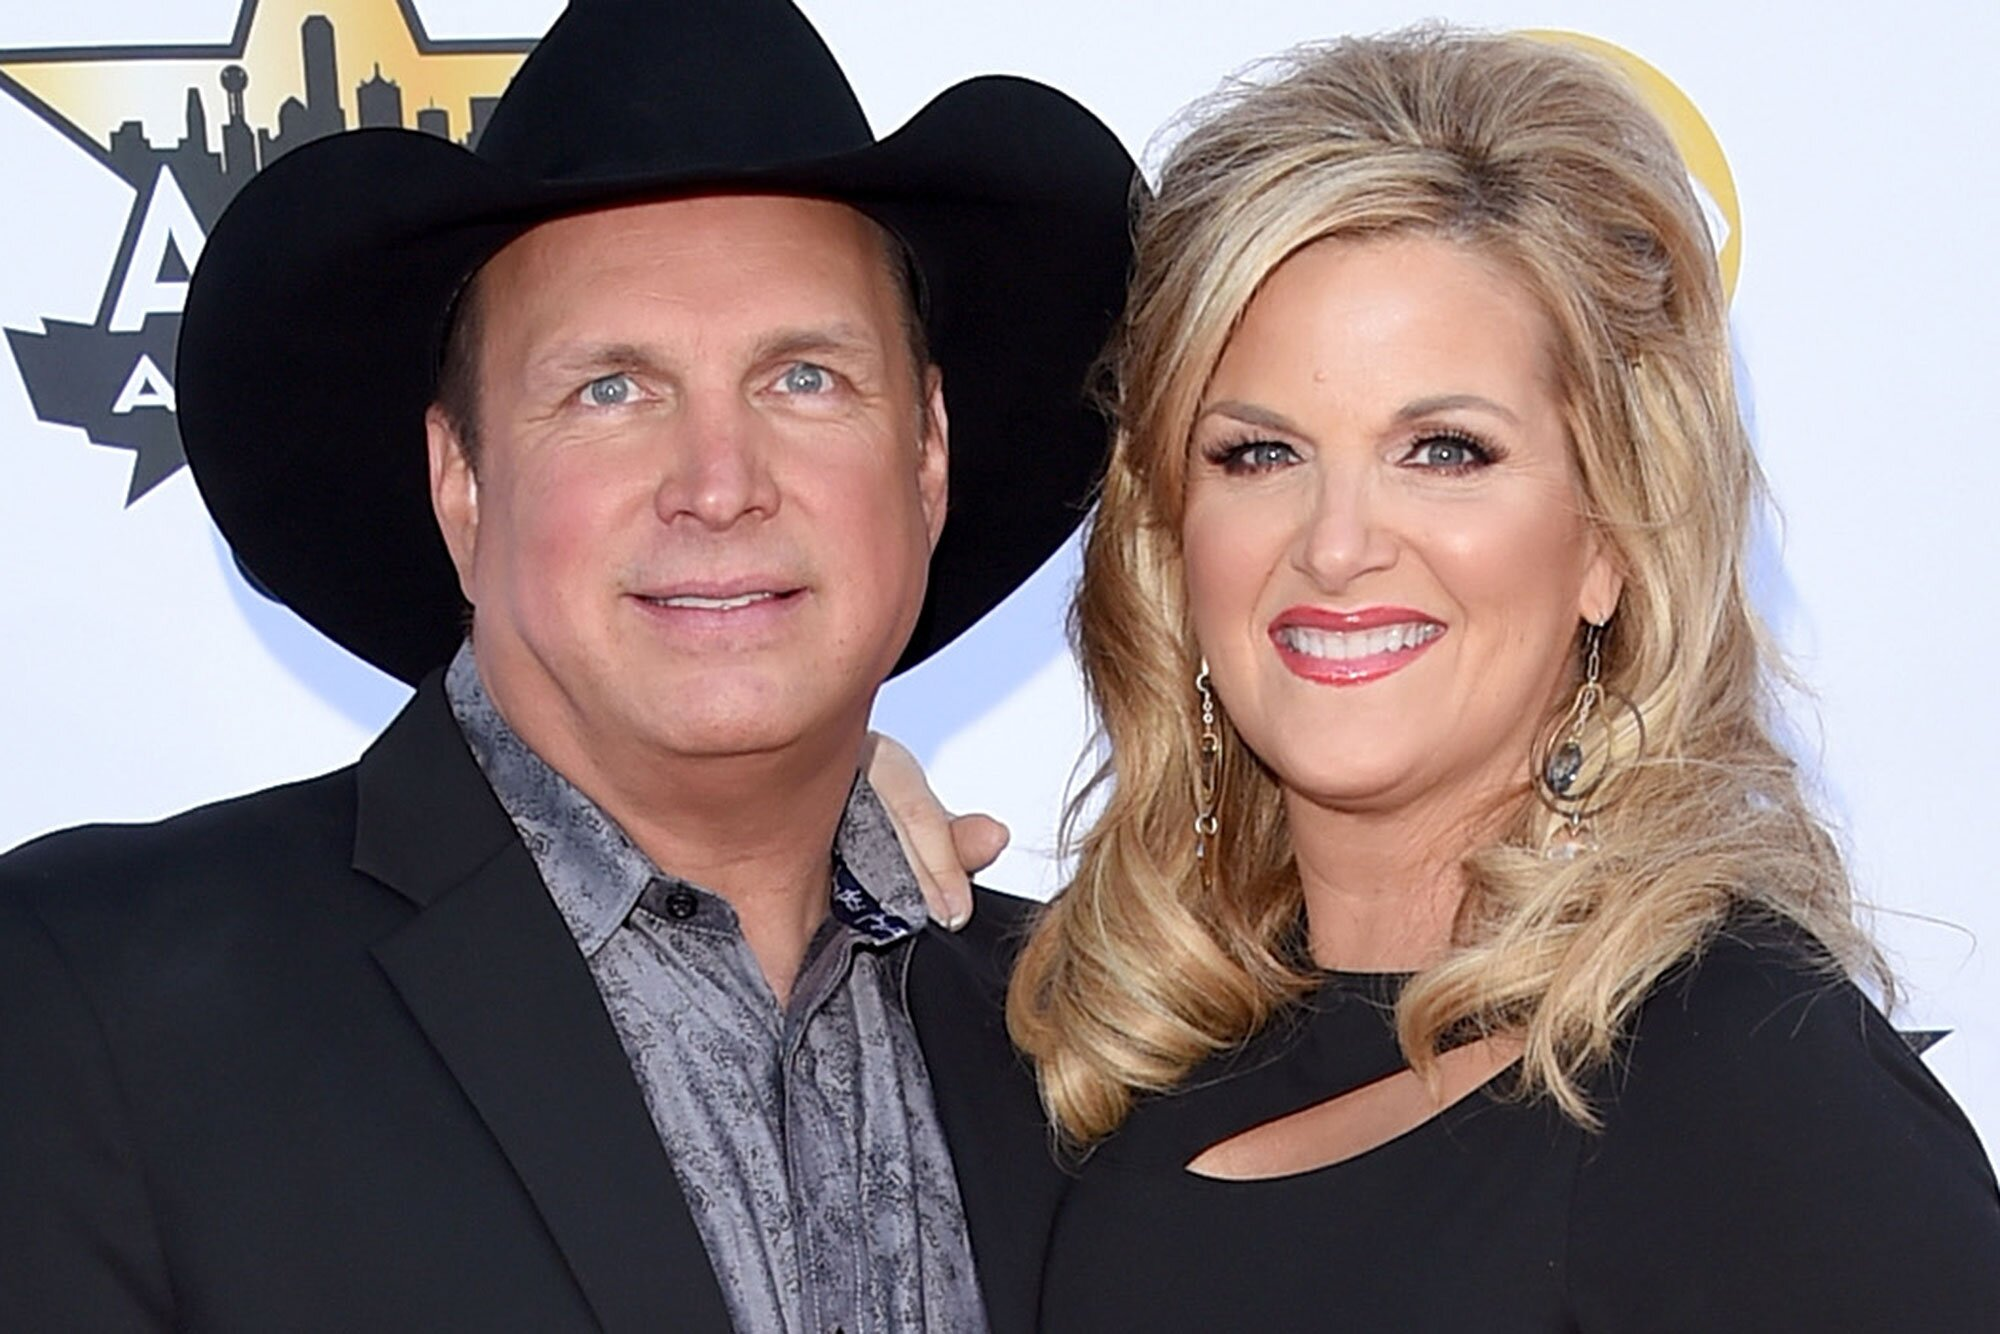 Find Out Garth Brooks Sweet Nickname For Wife Trisha Yearwood